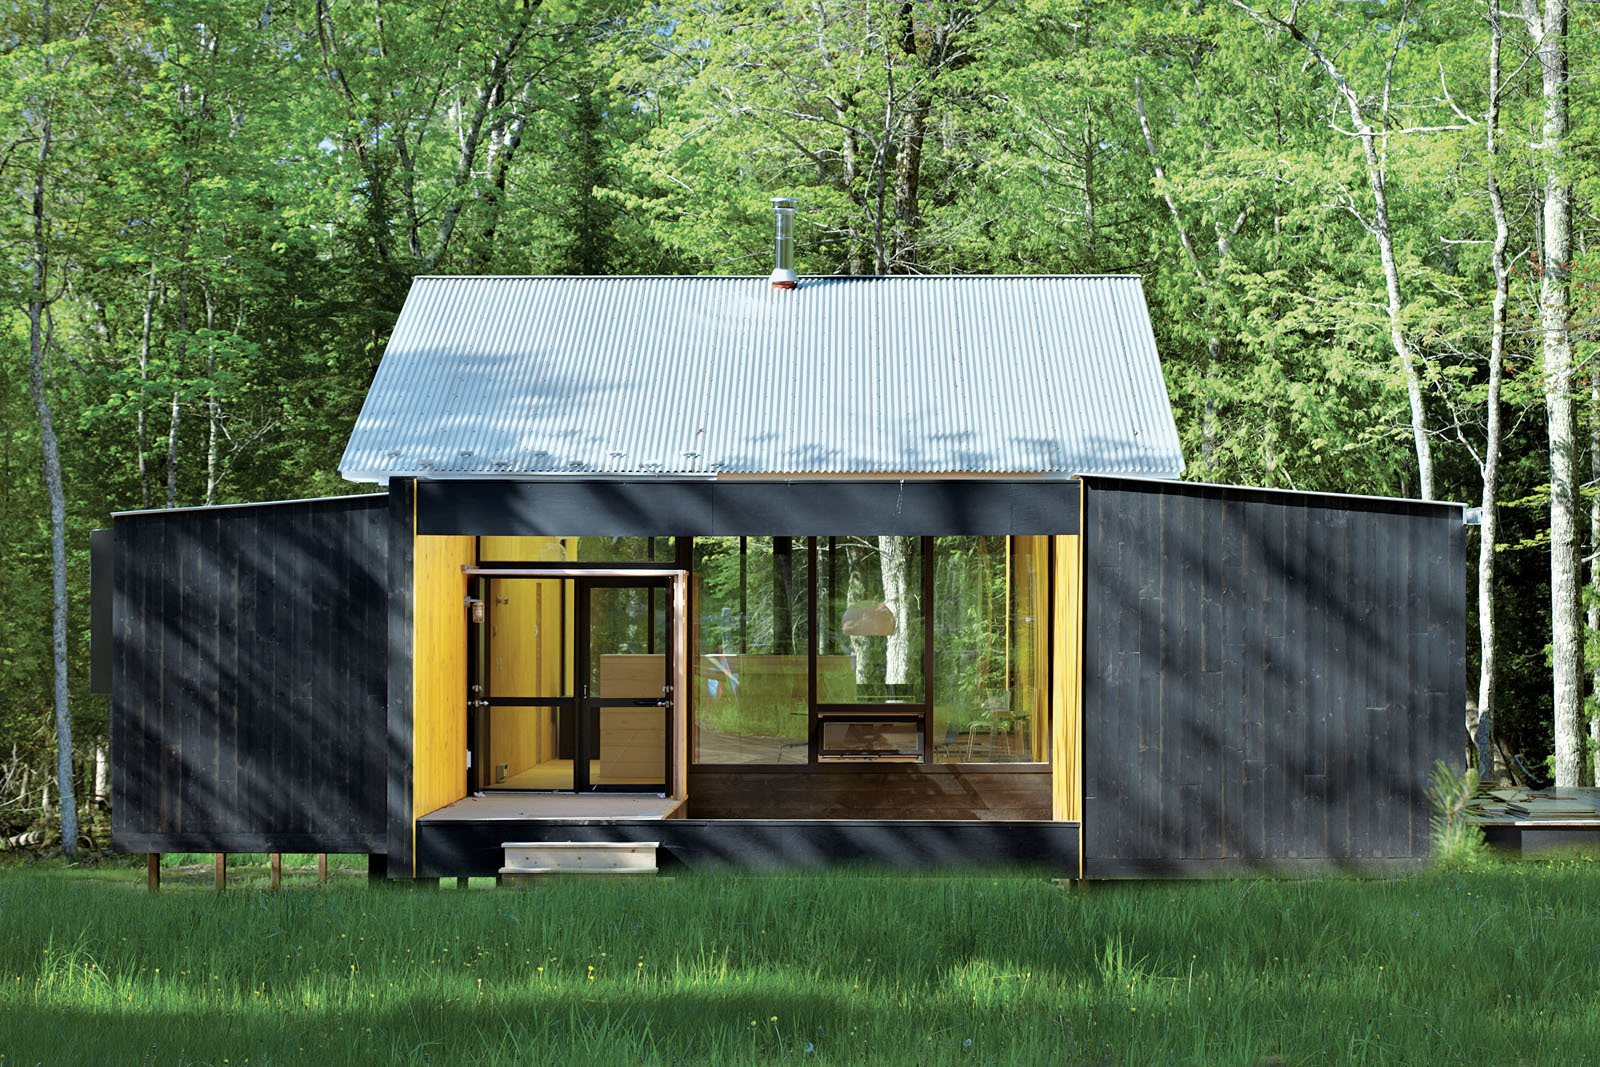 Architect Charlie Lazor opted for a wash of black on the prefab cabin he designed on Madeline Island, Wisconsin. Tagged: Exterior, Prefab Building Type, House, Shed RoofLine, Cabin Building Type, and Metal Roof Material.  Photo 71 of 101 in 101 Best Modern Cabins from Small Homes in the Midwest